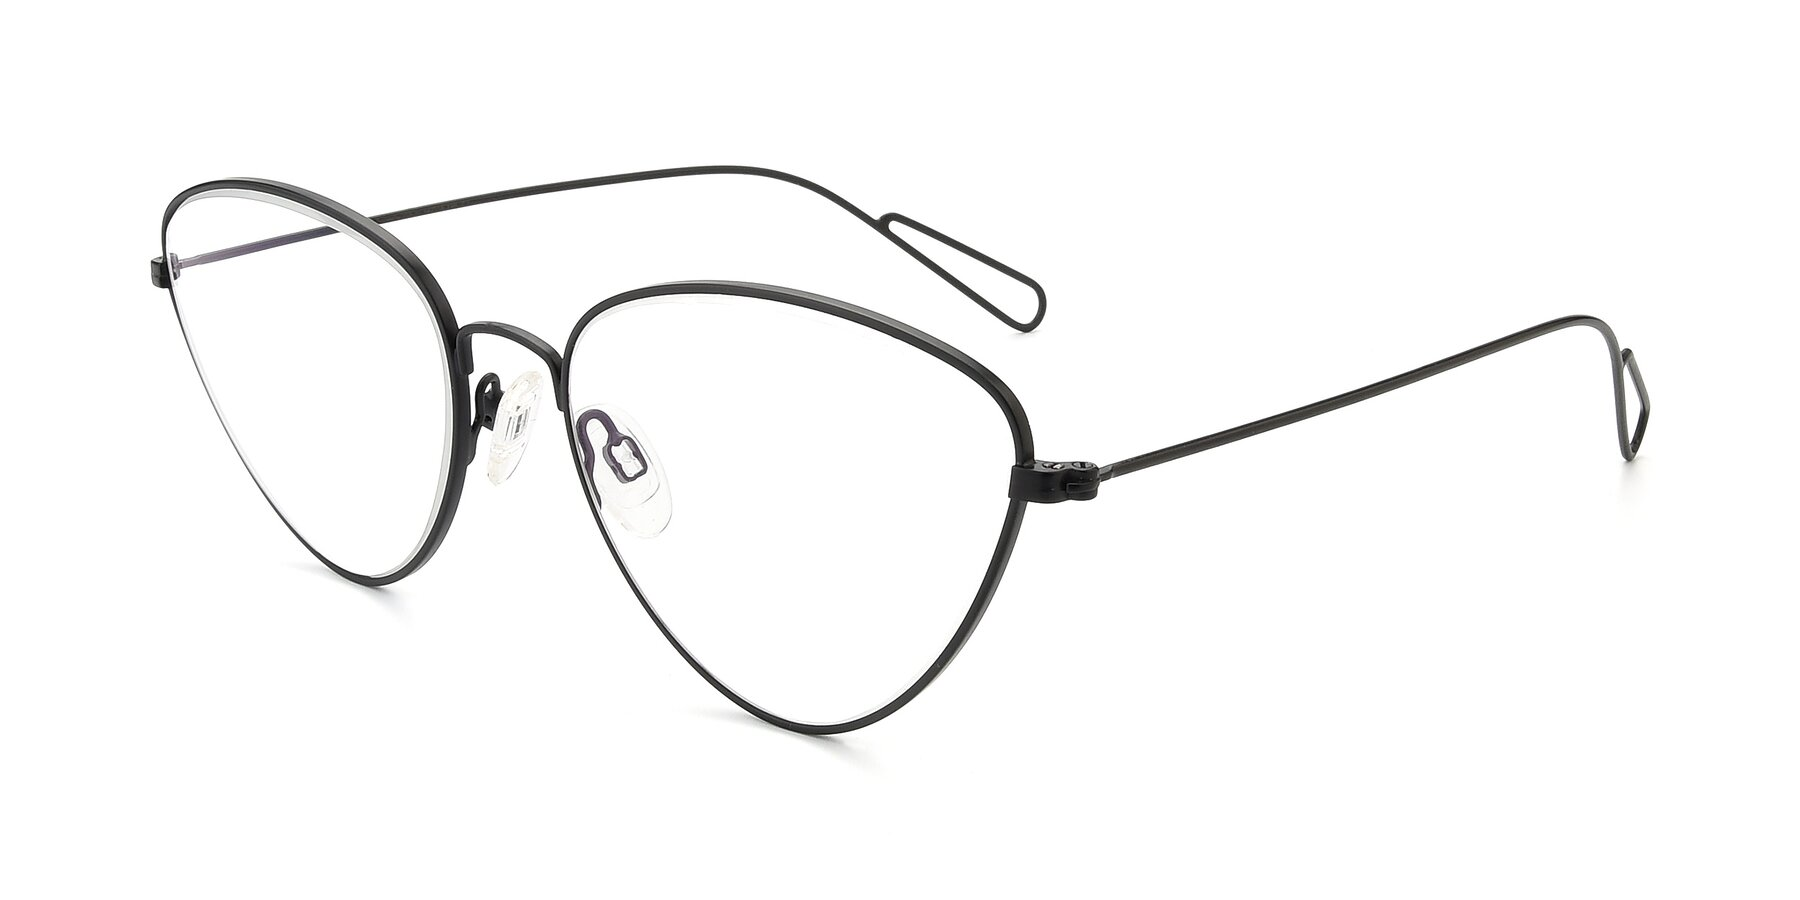 Angle of Butterfly Effect in Black with Clear Eyeglass Lenses